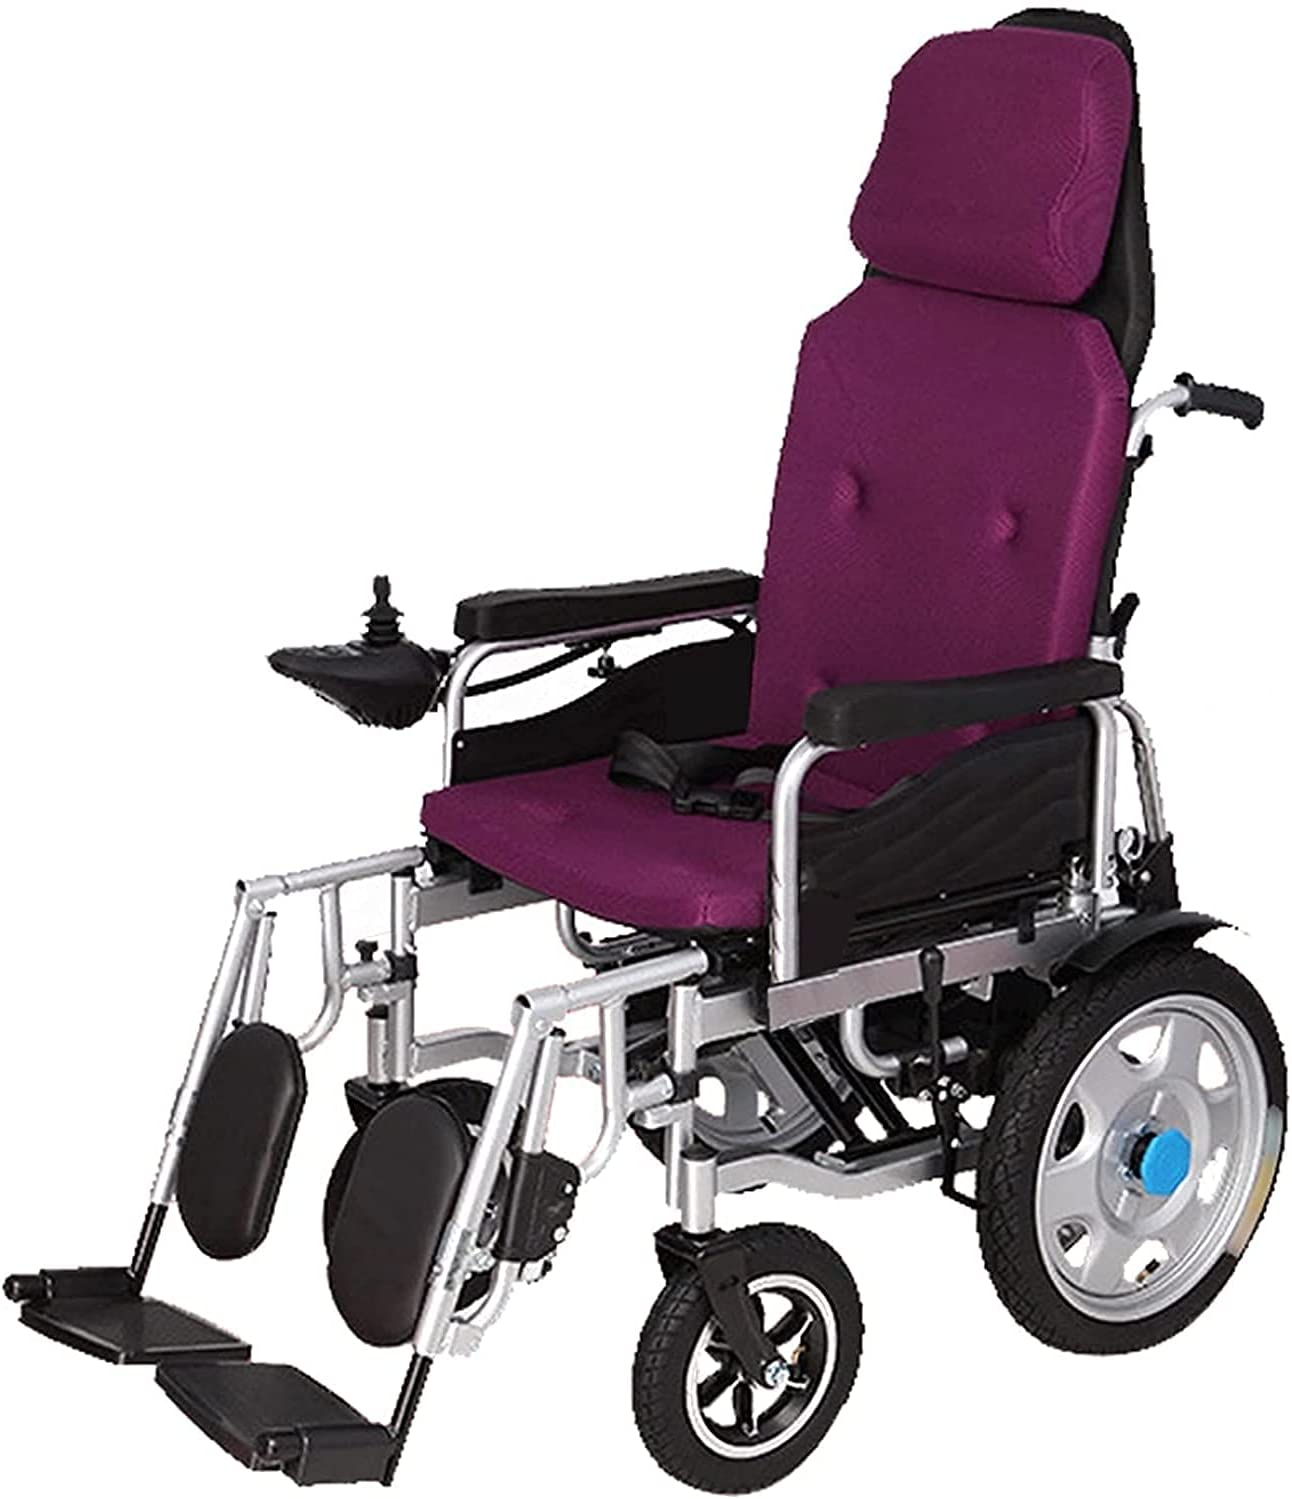 Electric Wheelchair with Headrest Sales of SALE items from new works Wheel Standing Reclining Challenge the lowest price Full